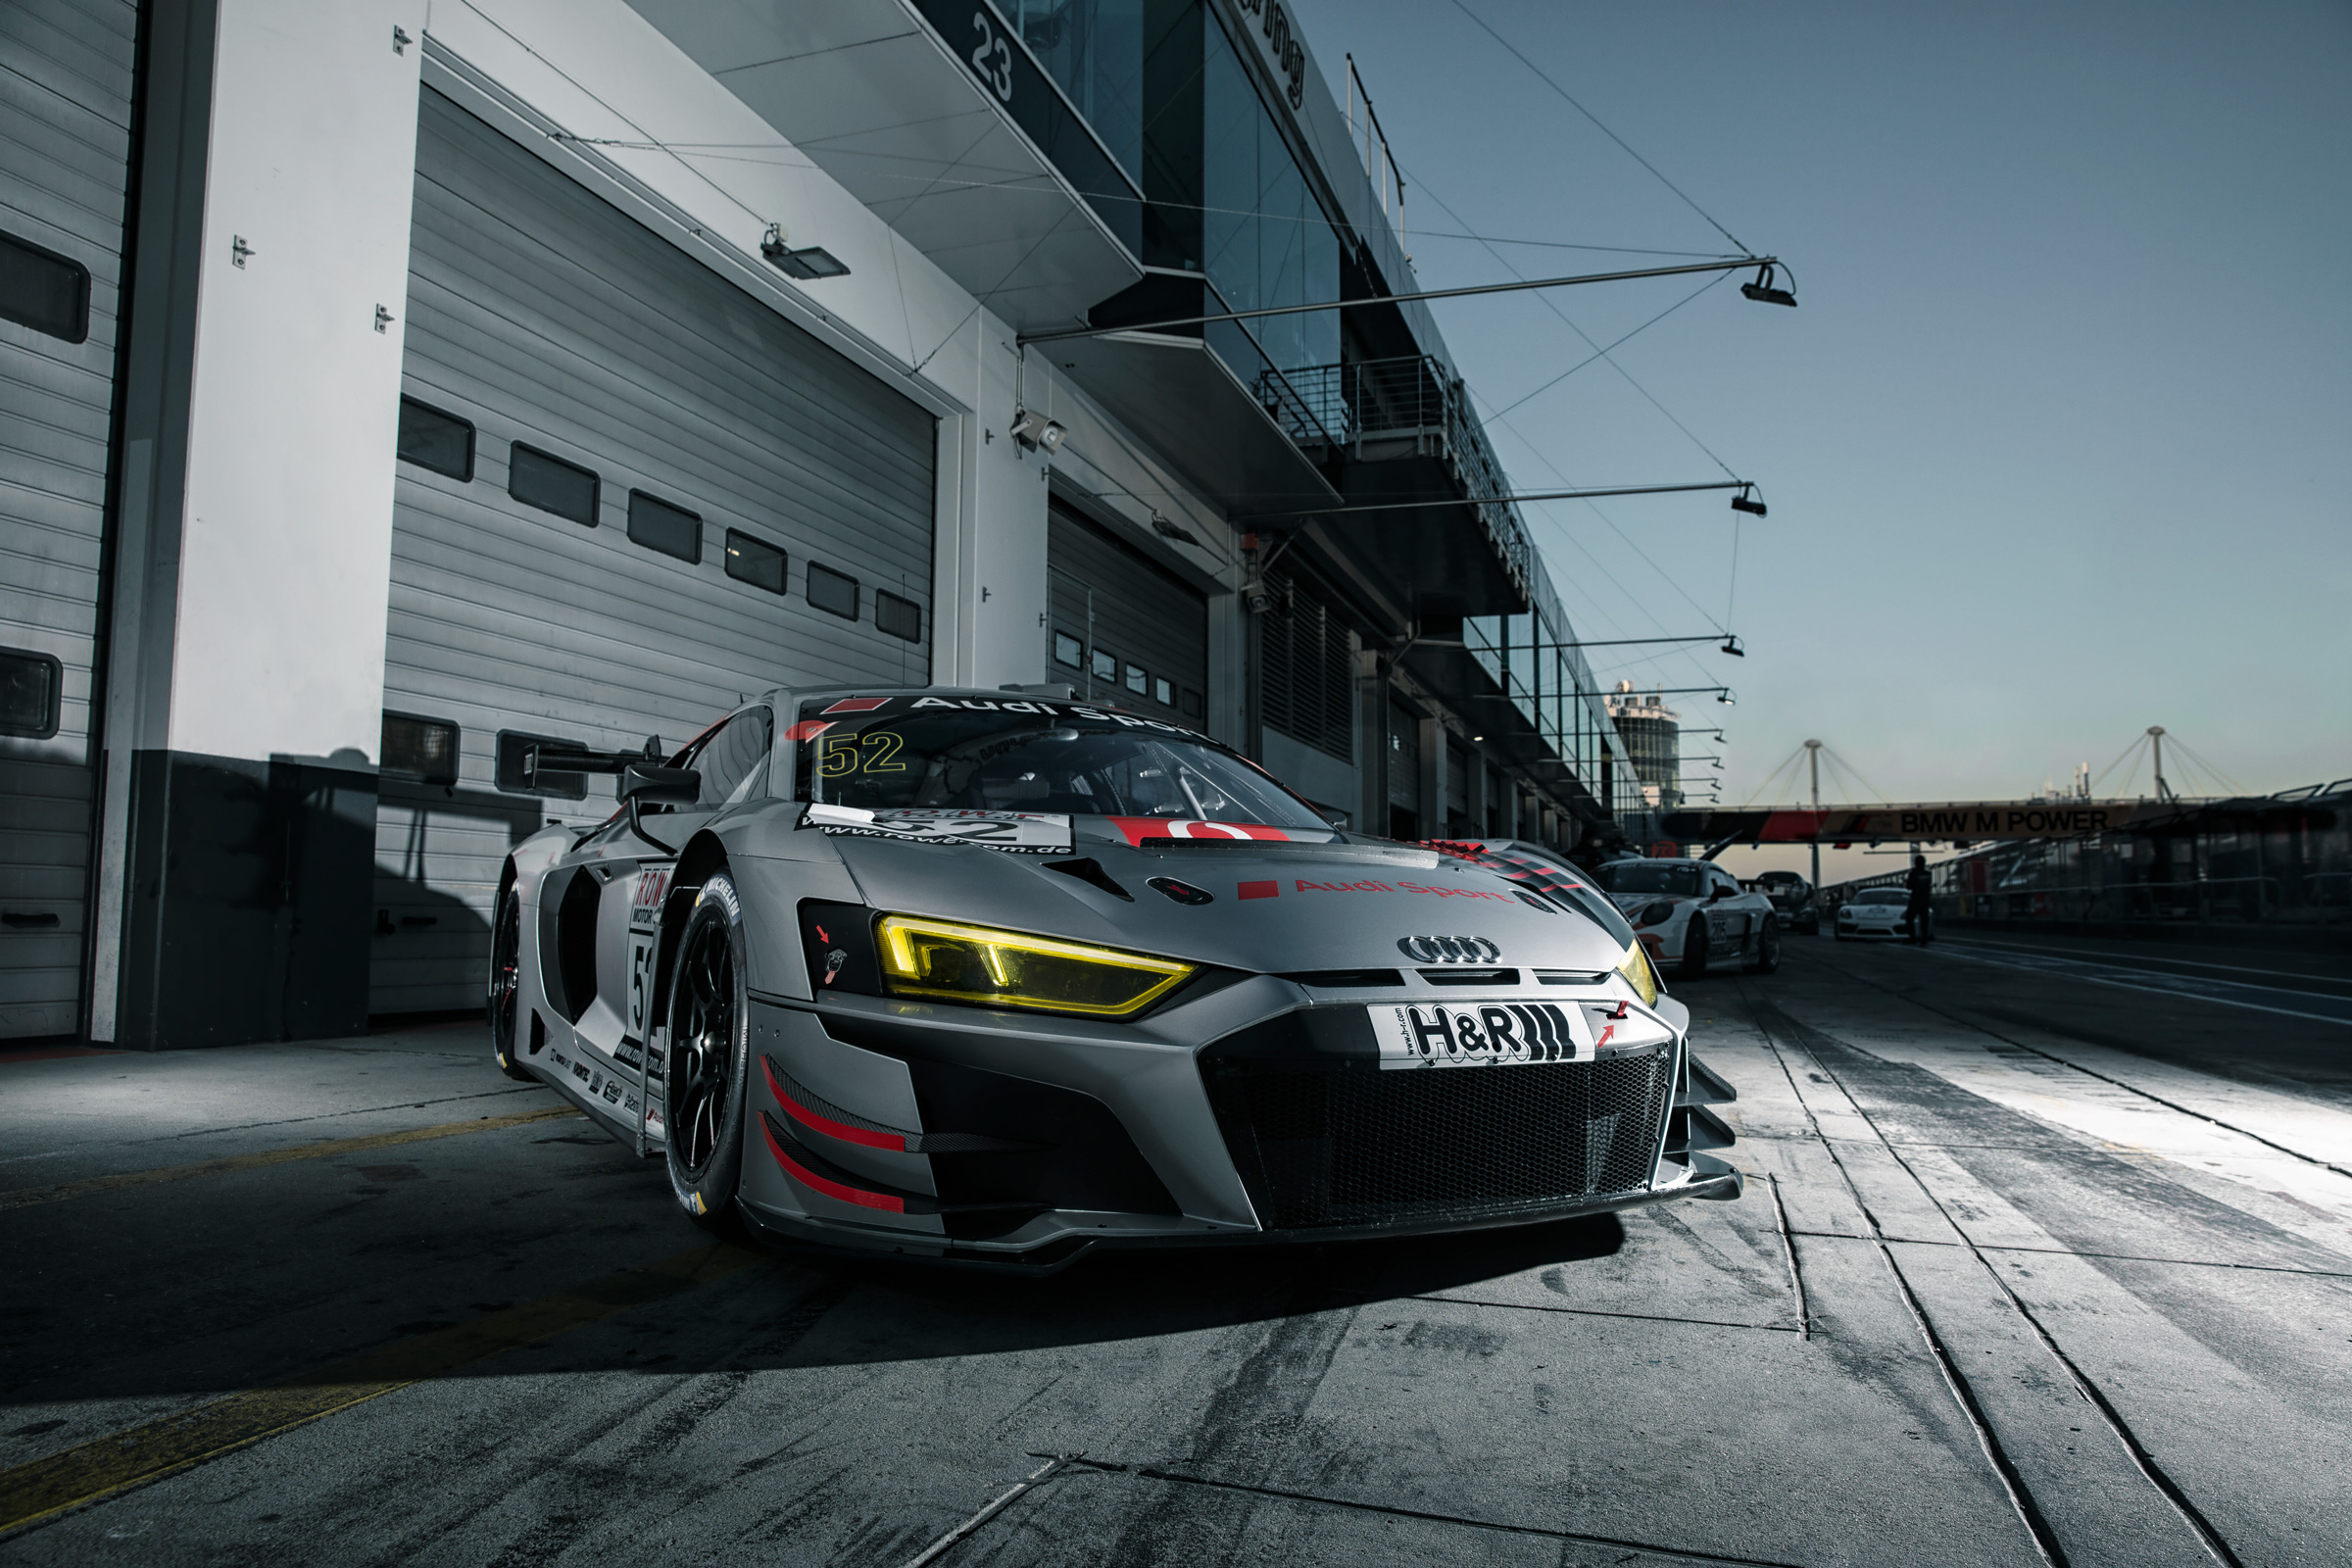 Der neue AUDI R8 LMS 2019 in der Boxengasse des Nuerburgrings. The brand new AUDI R8 LMS 2019 in the pitlane of the Nuerburgring.